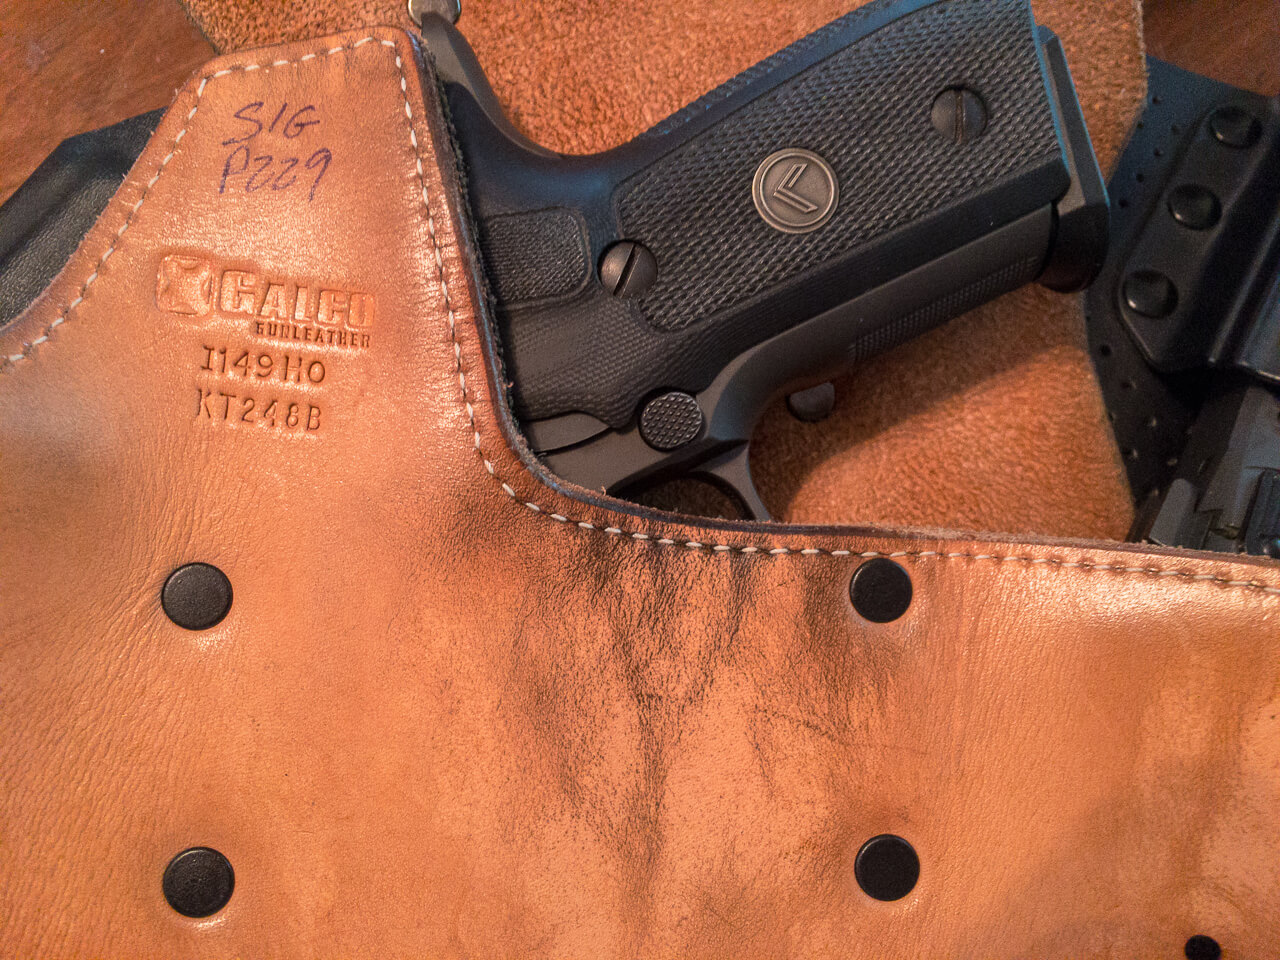 This Galco KingTuk holster comes standard with a combat cut. In addition to making the draw easier, it leaves the magazine release unhindered.